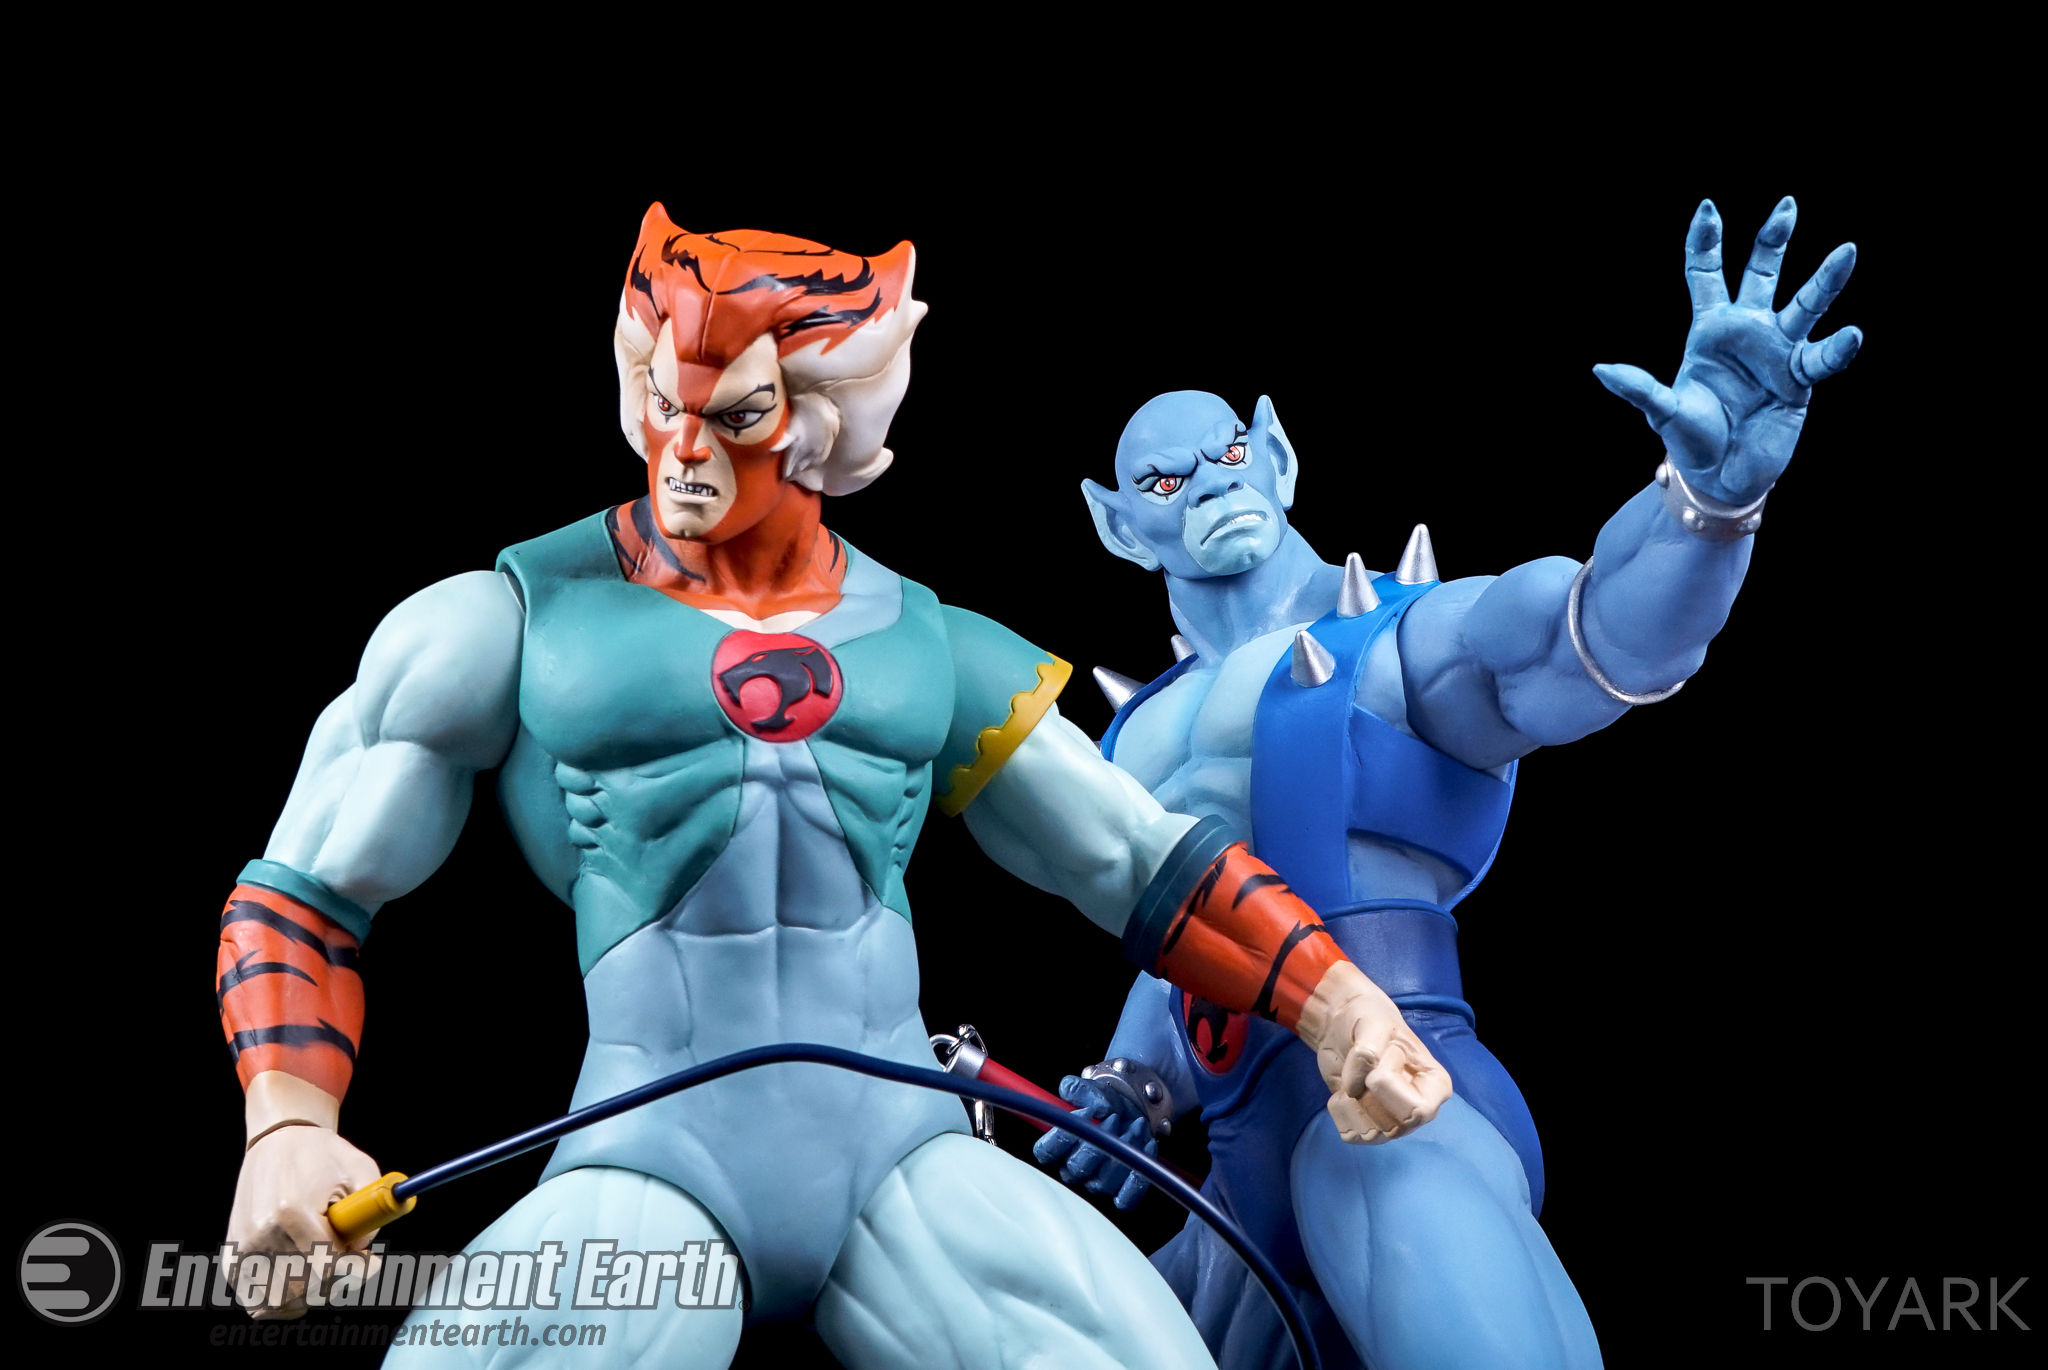 http://news.toyark.com/wp-content/uploads/sites/4/2016/05/Mezco-Thundercats-Tygra-035.jpg